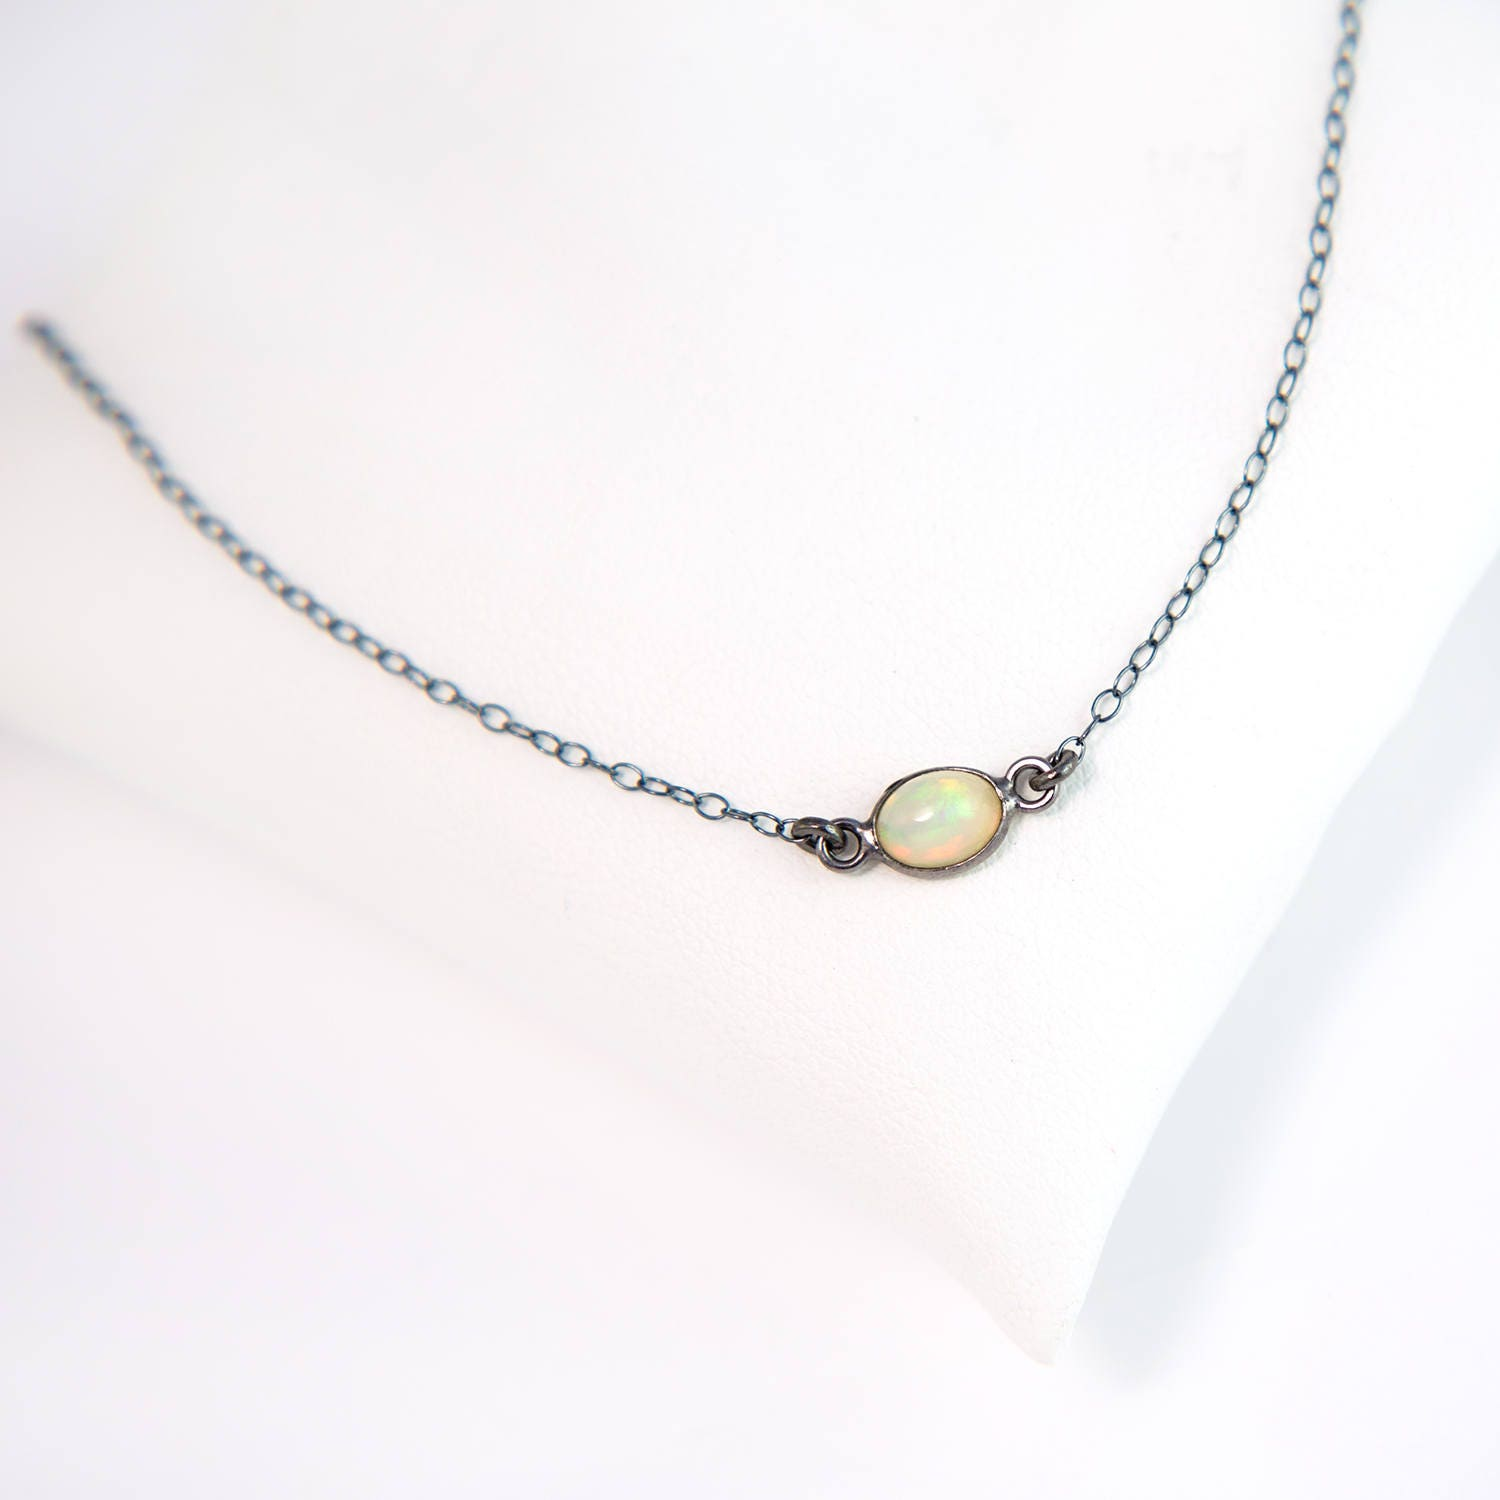 vintage genuine jewelry real tone necklace nos pendant pin gold birthstone shaped october oval metal opal